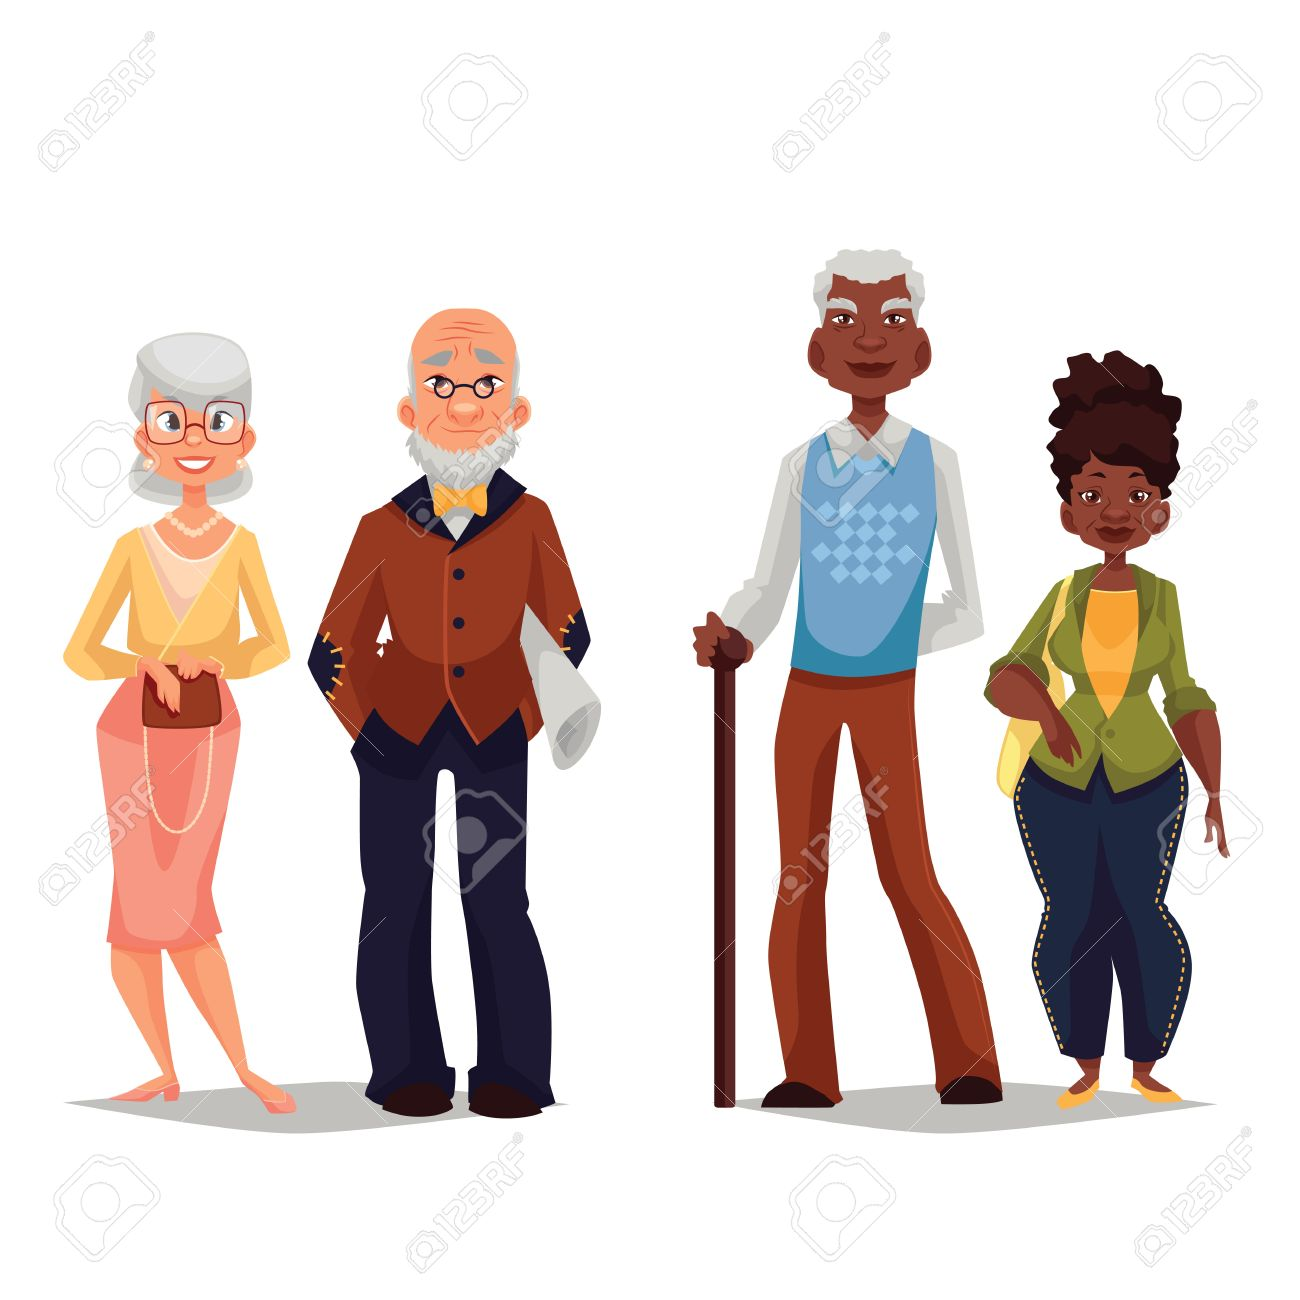 Couples Elderly Old Black Man And An Old Black Woman Grown Stock